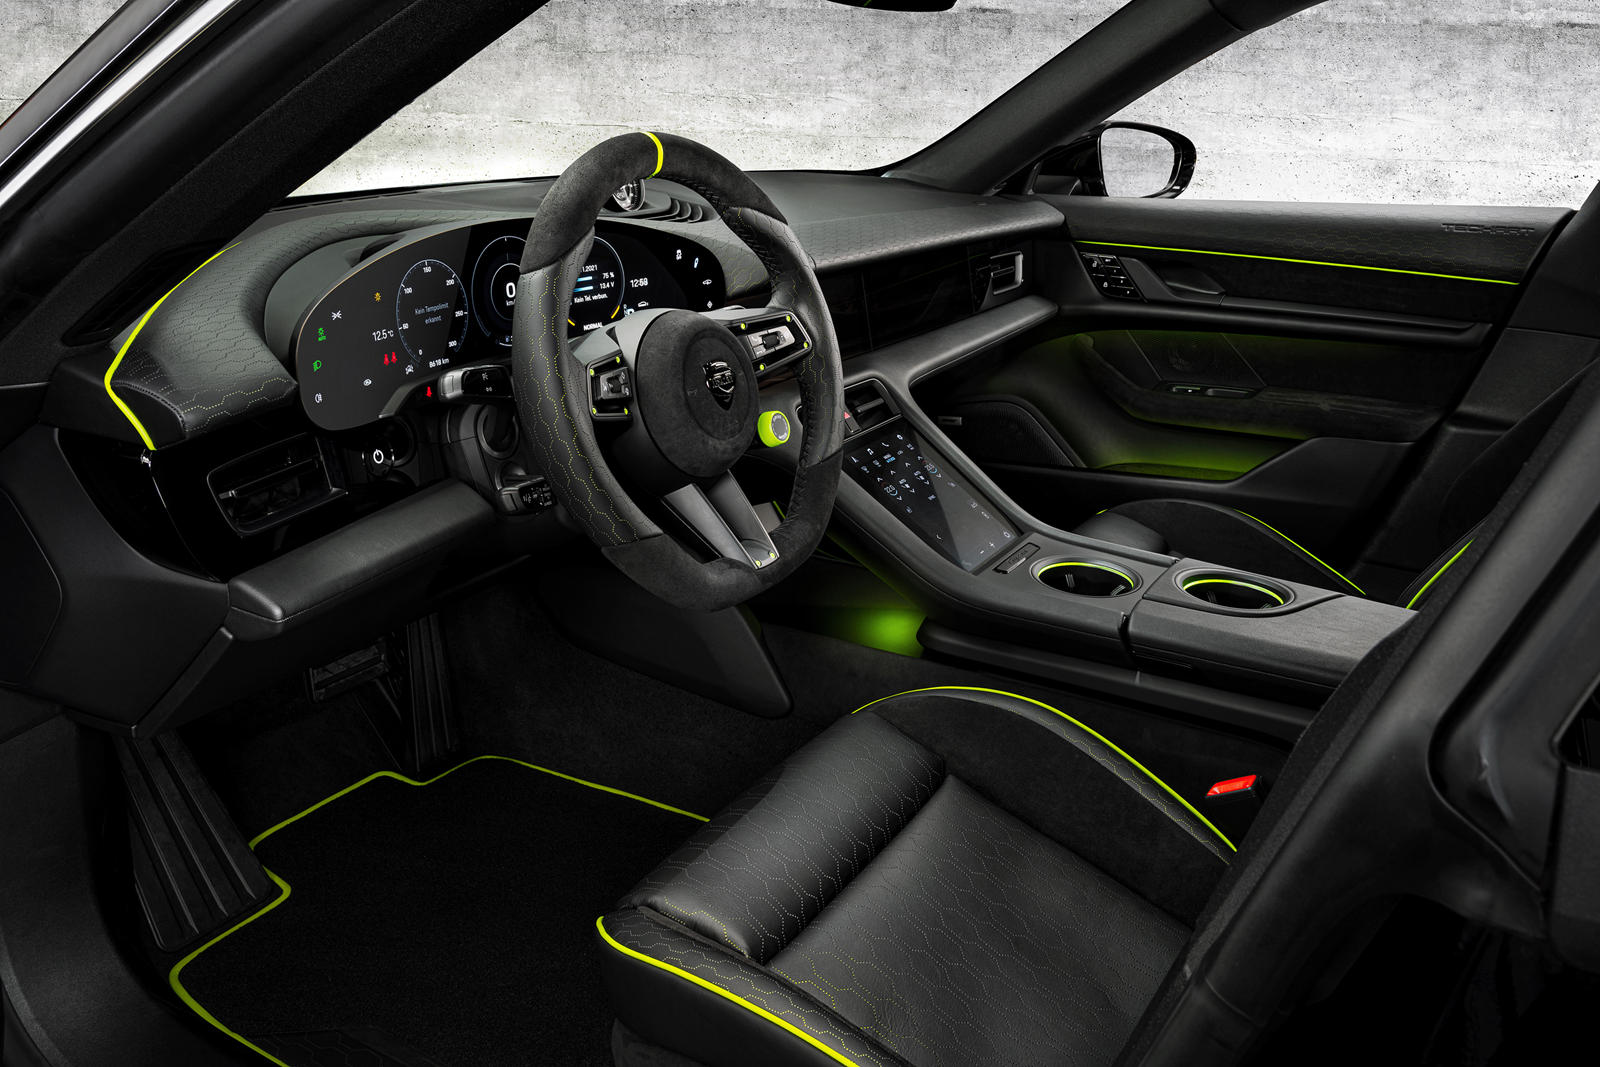 TechArt Goes Green On Porsche Taycan's Interior